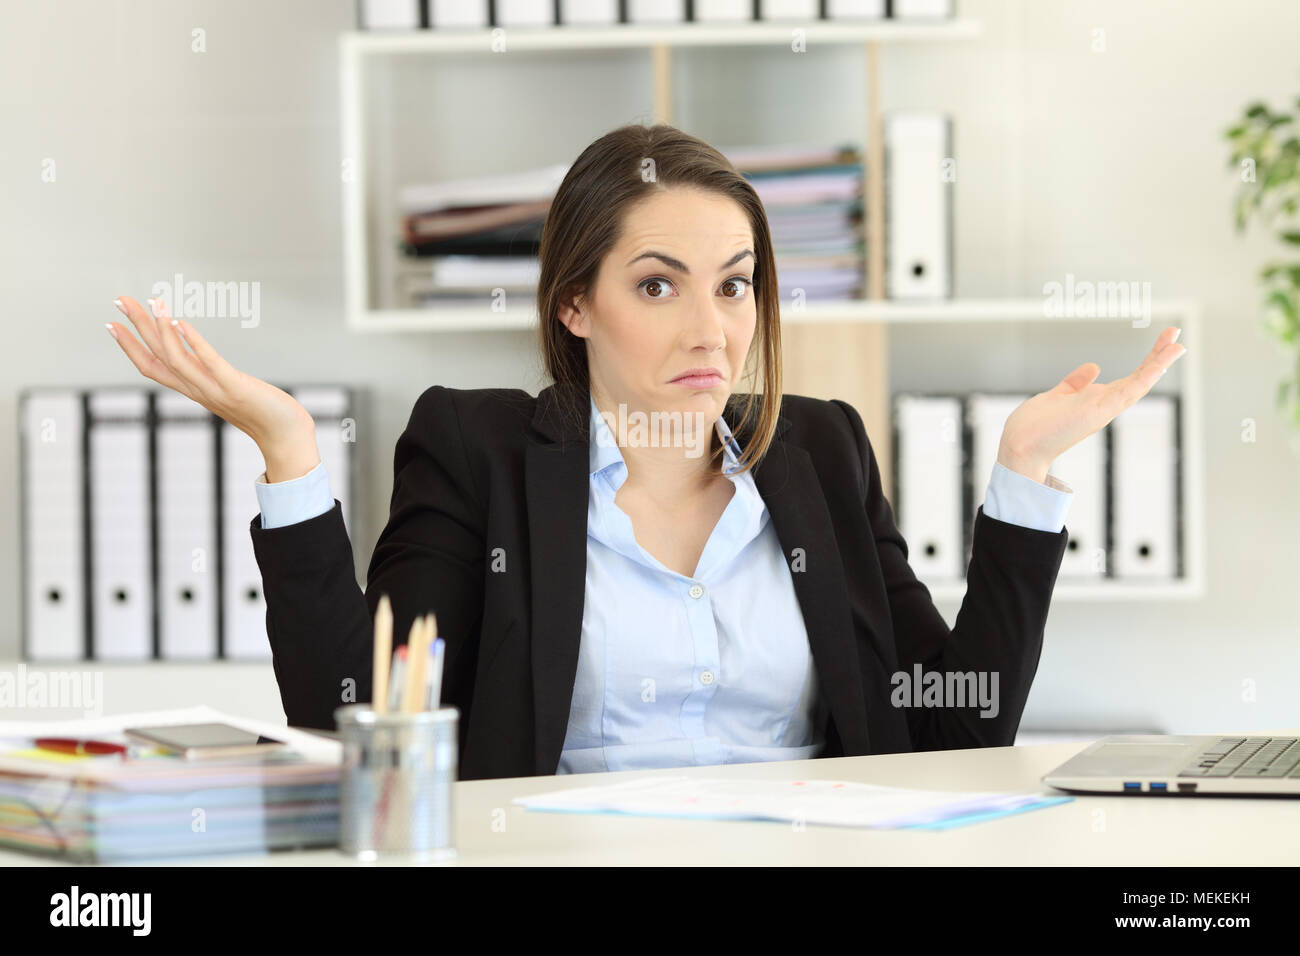 Front view portrait of a confused businesswoman shrugging shoulders looking at camera at office - Stock Image